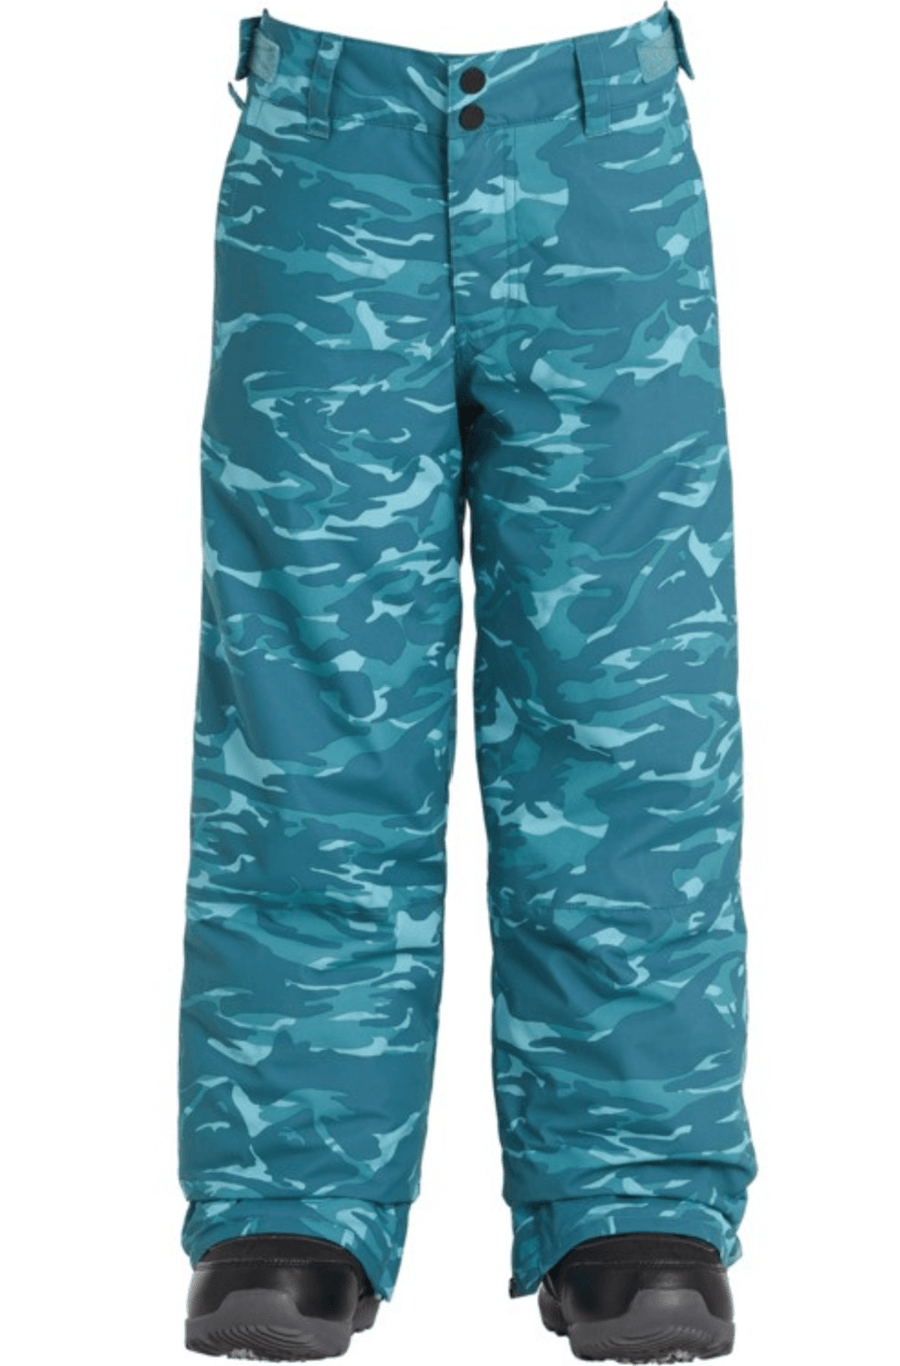 BILLABONG Grom Snowboard Pants Boys Blue Camo 2021 YOUTH INFANT OUTERWEAR - Youth Snowboard Pants Billabong